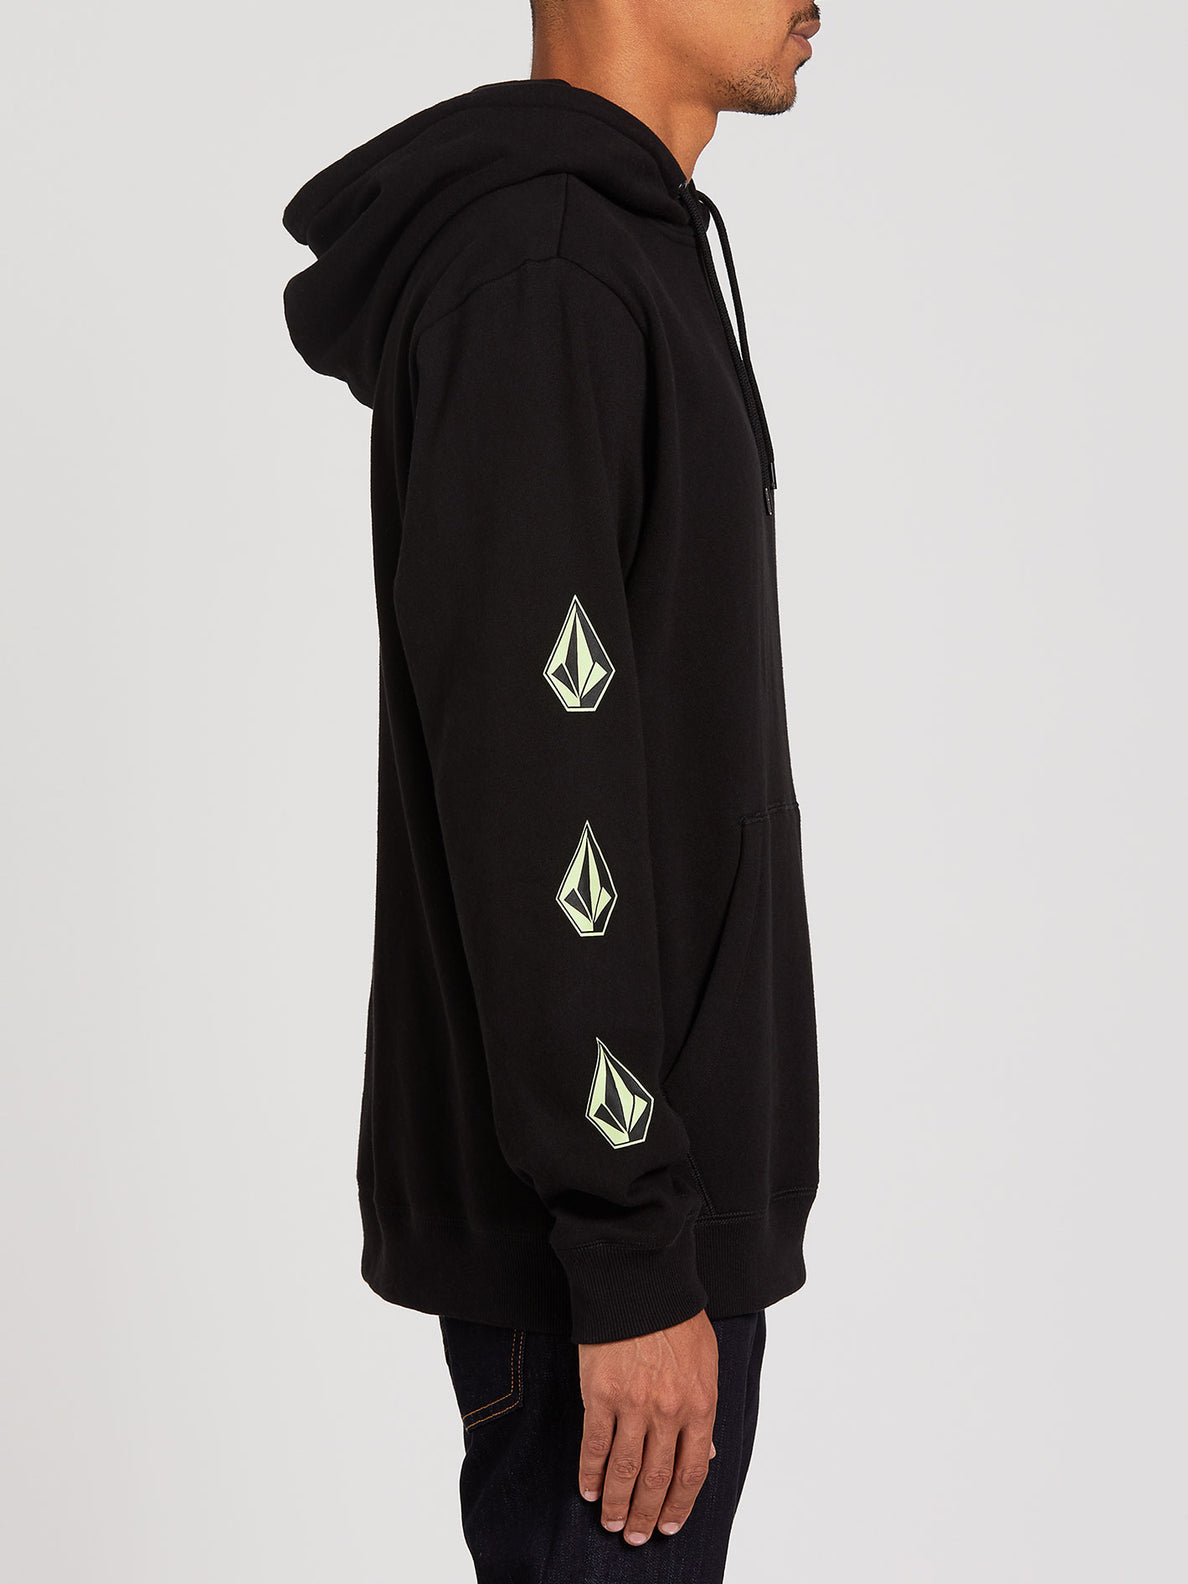 Deadly Stones Pullover - New Black (A4112000_NBK) [2]